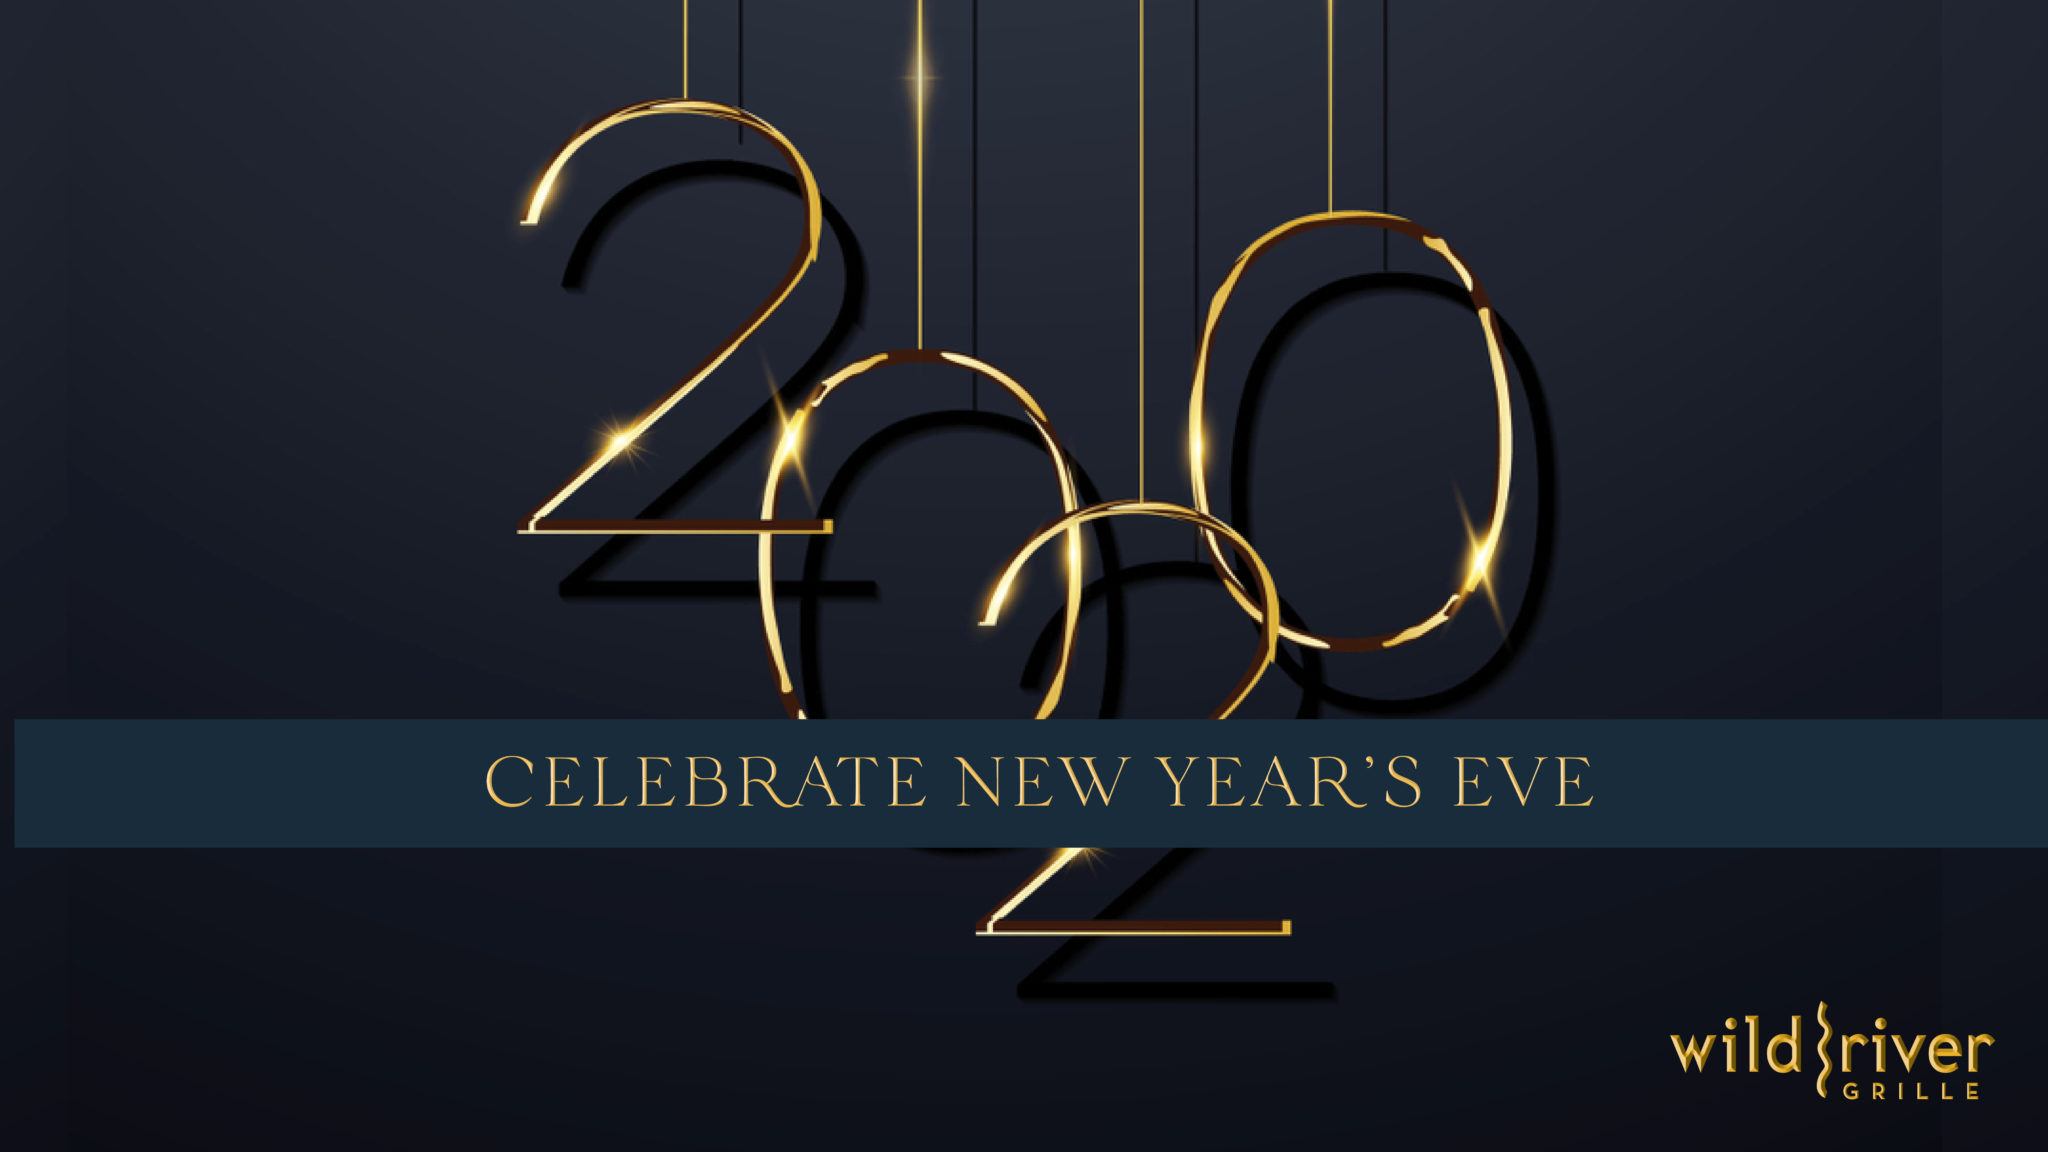 Wild River Grille Rings in the New Year 2020 with a Decadent 5-Course Meal